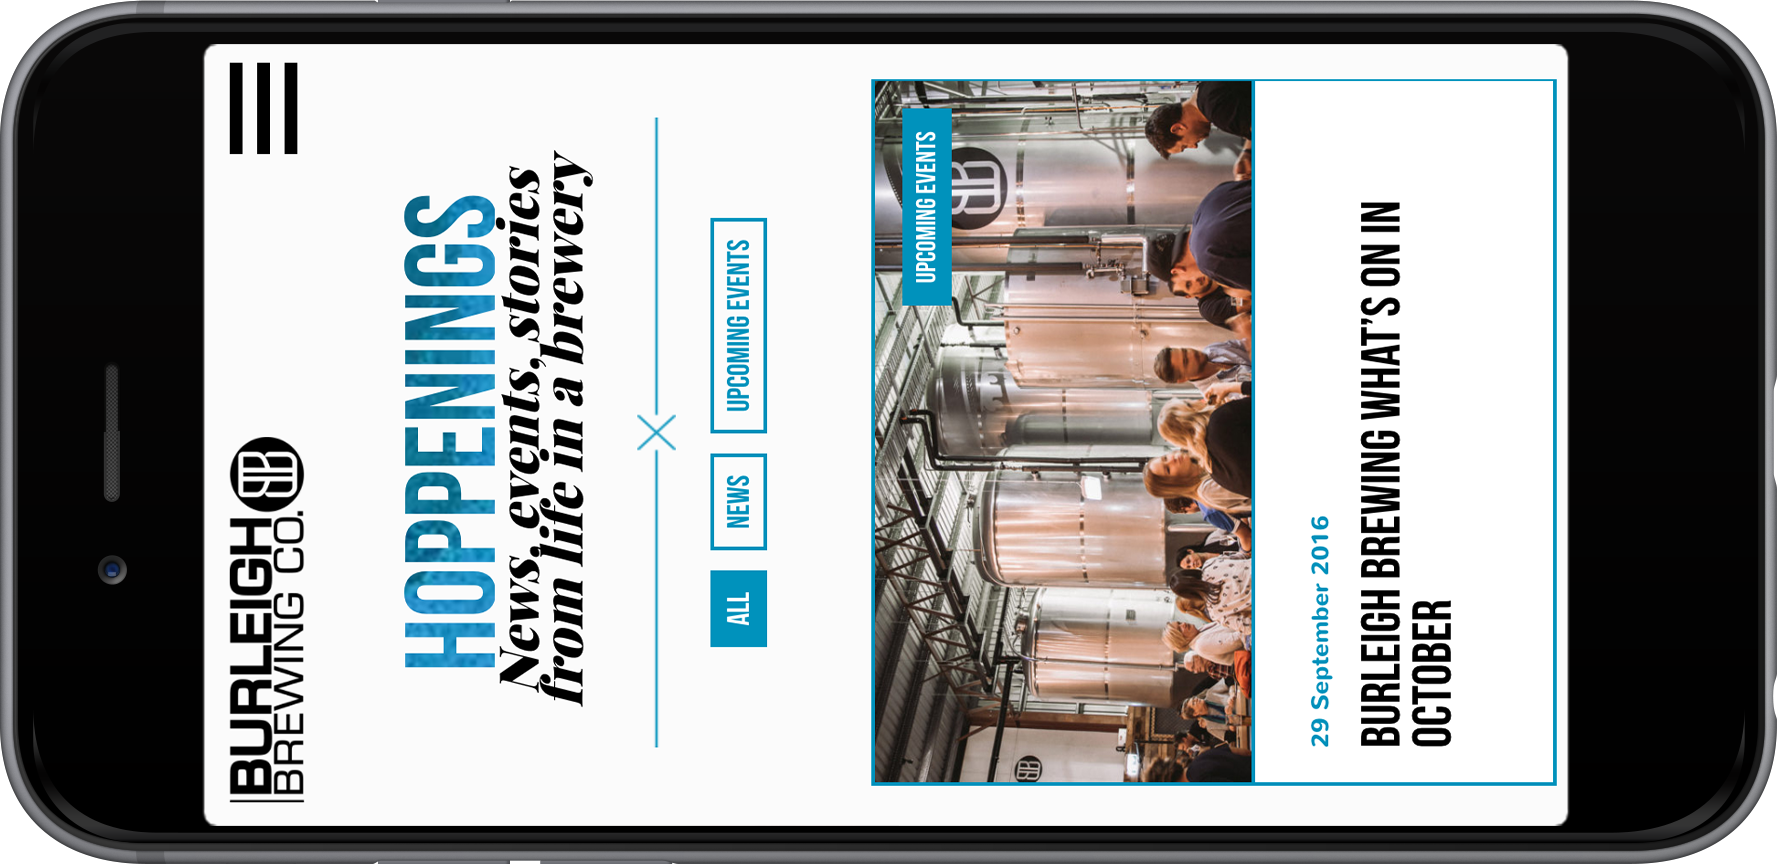 Burleigh Brewing - Website by Thirteen Digital